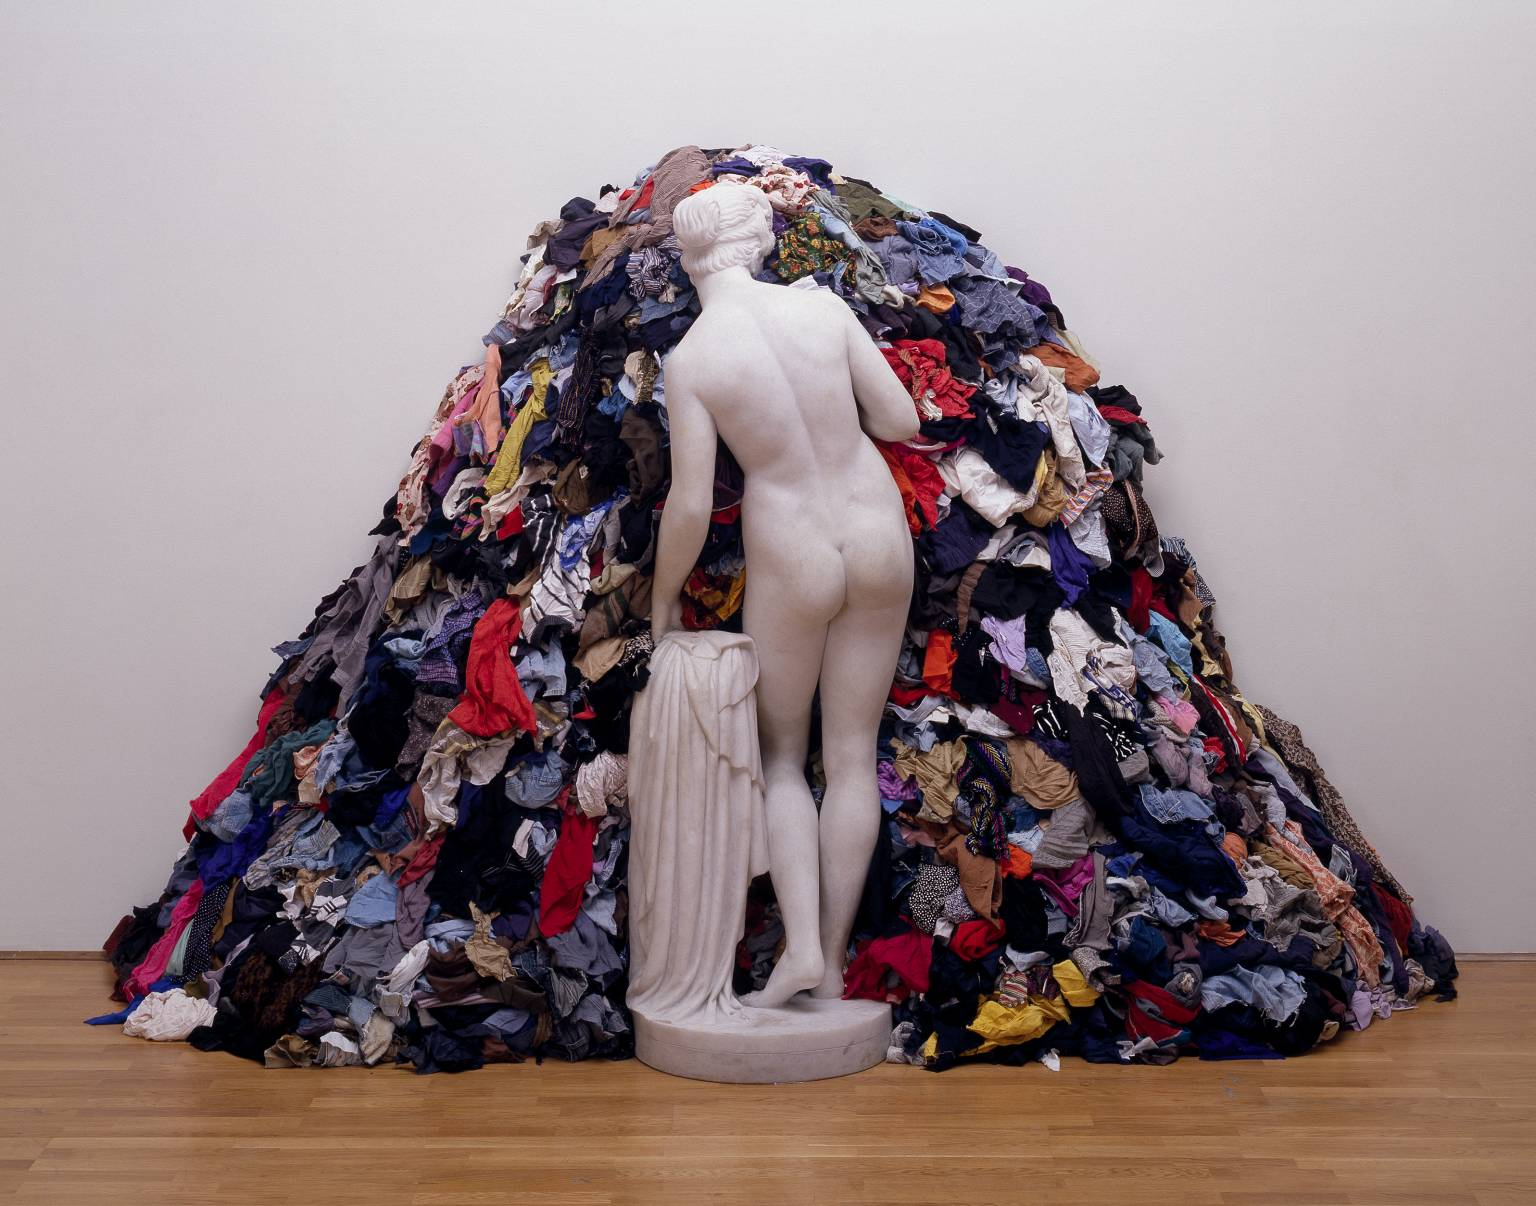 Arte Povera: Michelangelo Pistoletto,  Venus of Rags , 1967. Pistoleto contrasts the common rags of the poor with a recreation of a classical Venus statue